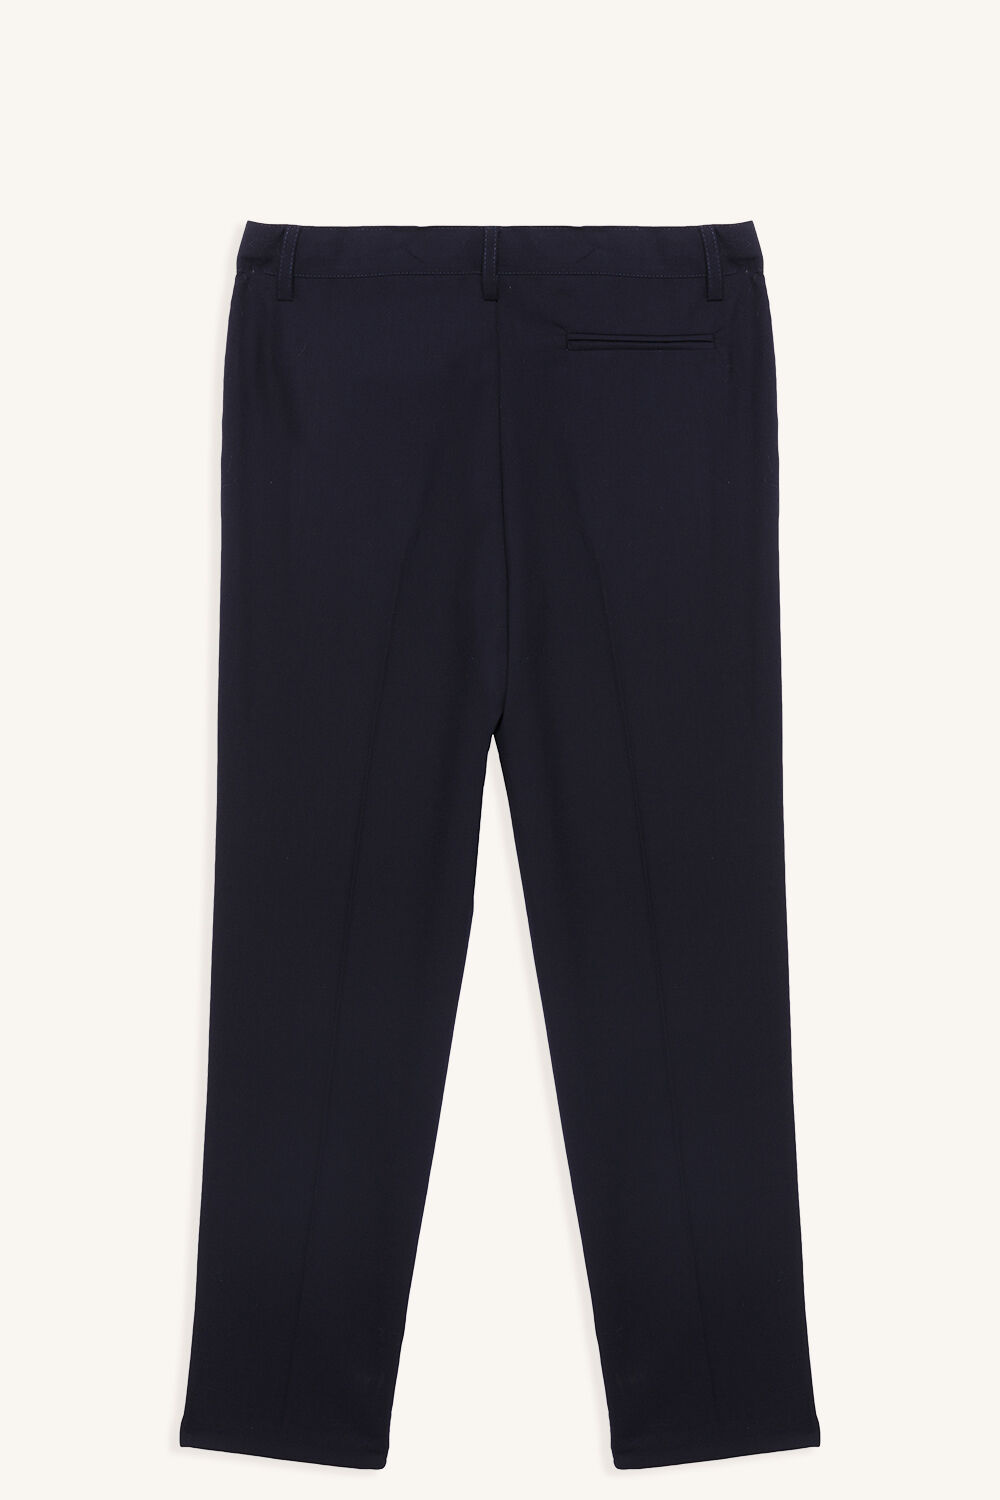 HARRY SUIT PANT in colour DRESS BLUES